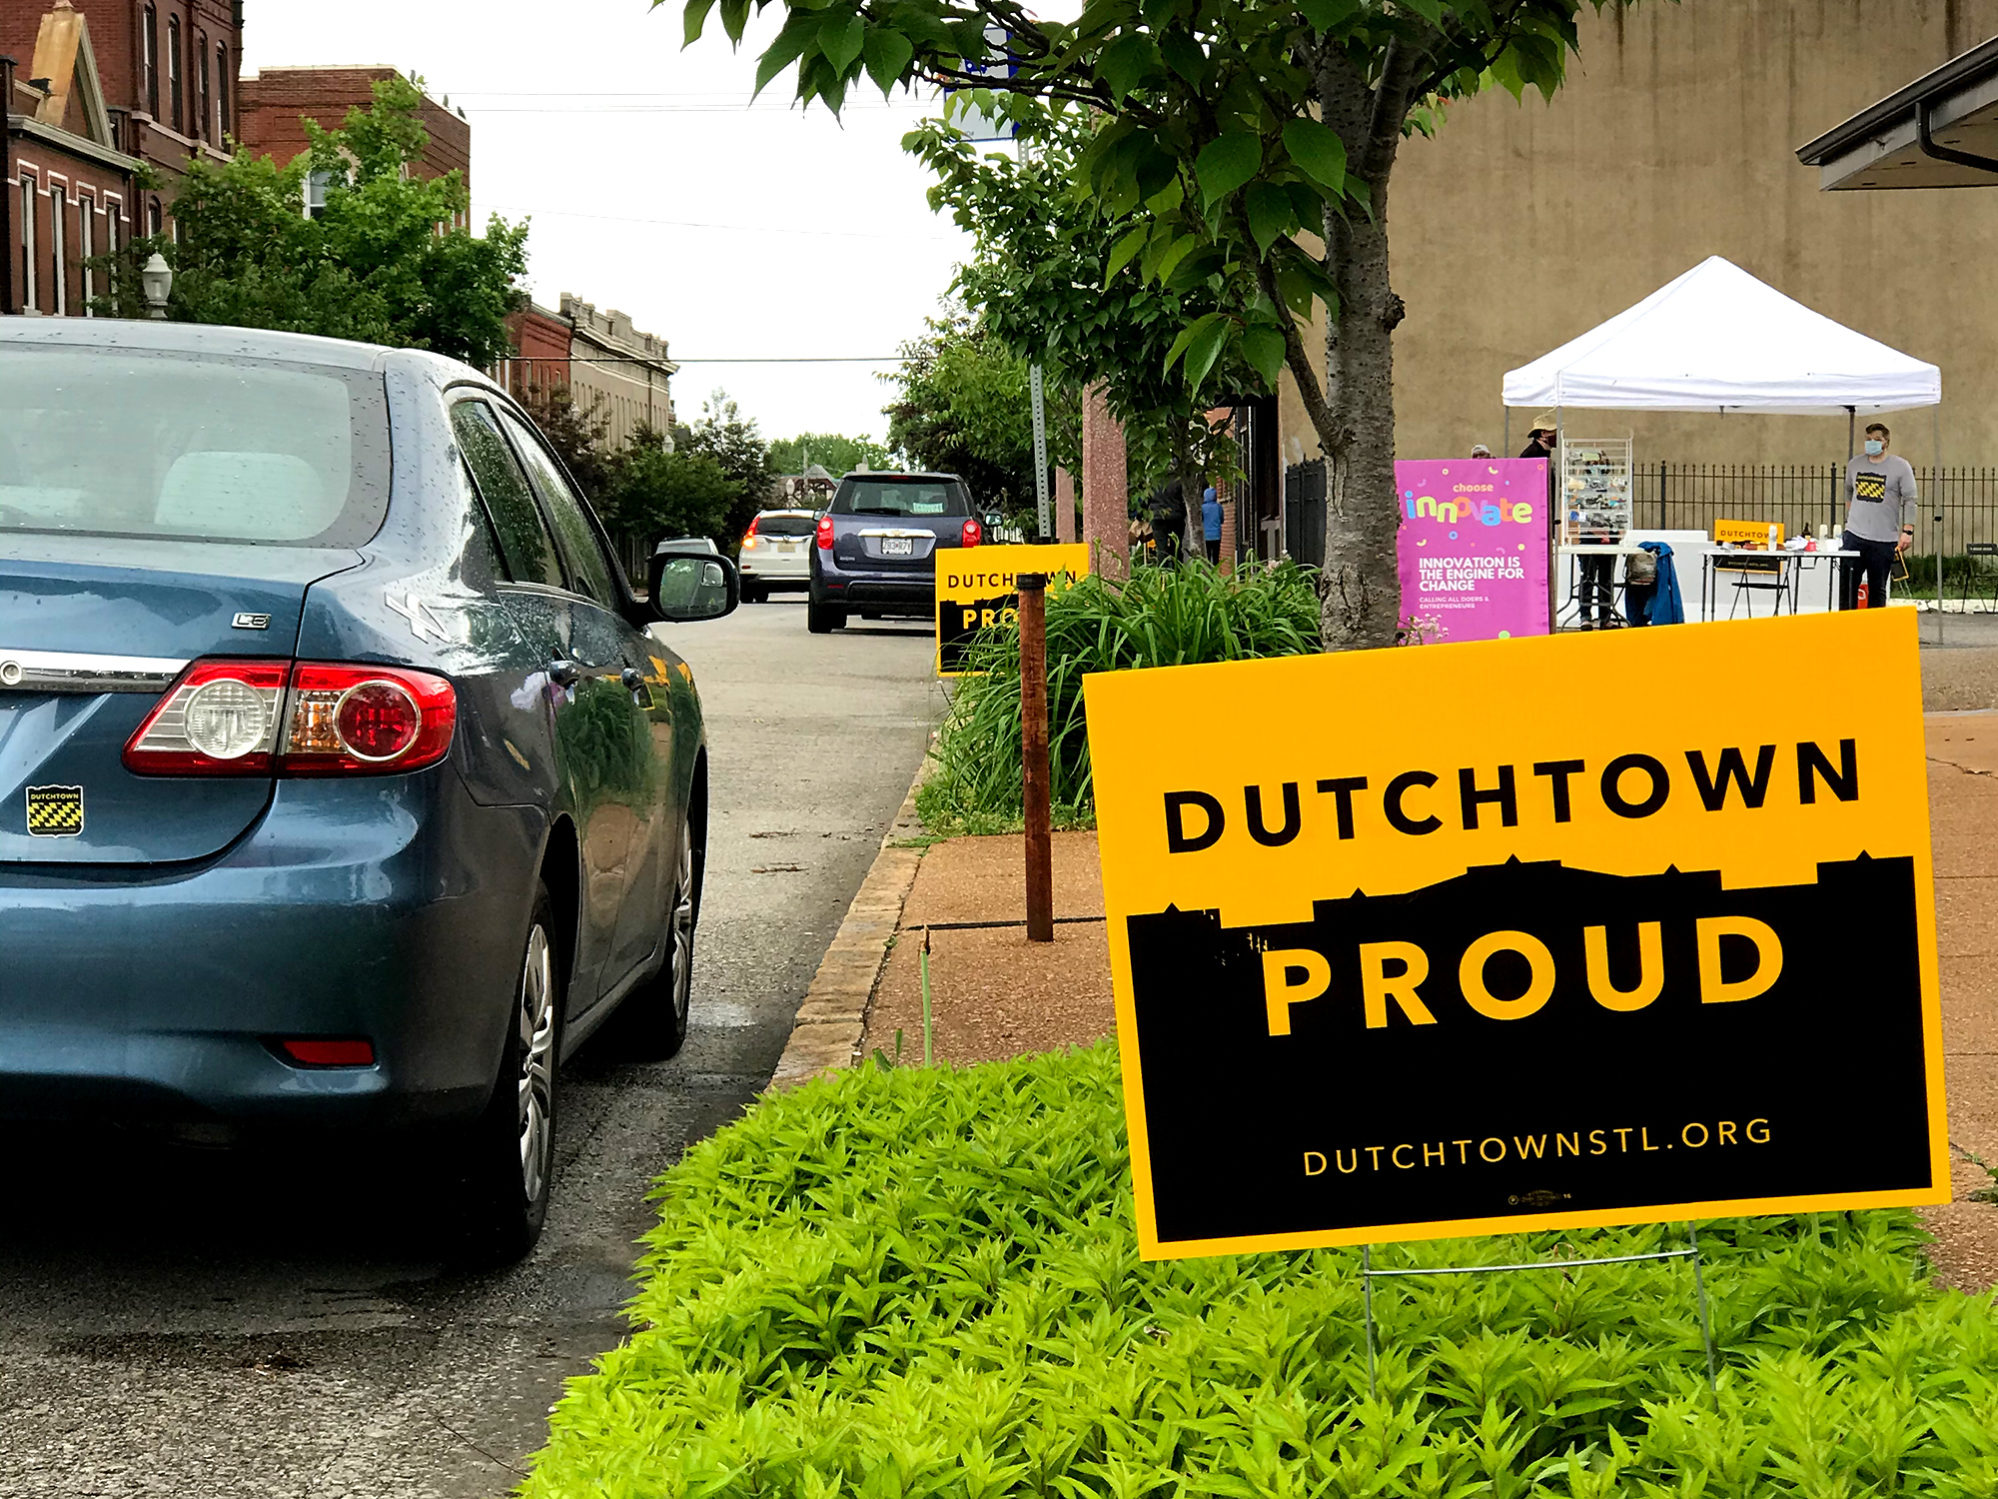 Dutchtown Proud signs at the Neighborhood Innovation Center in Downtown Dutchtown, St. Louis, MO.